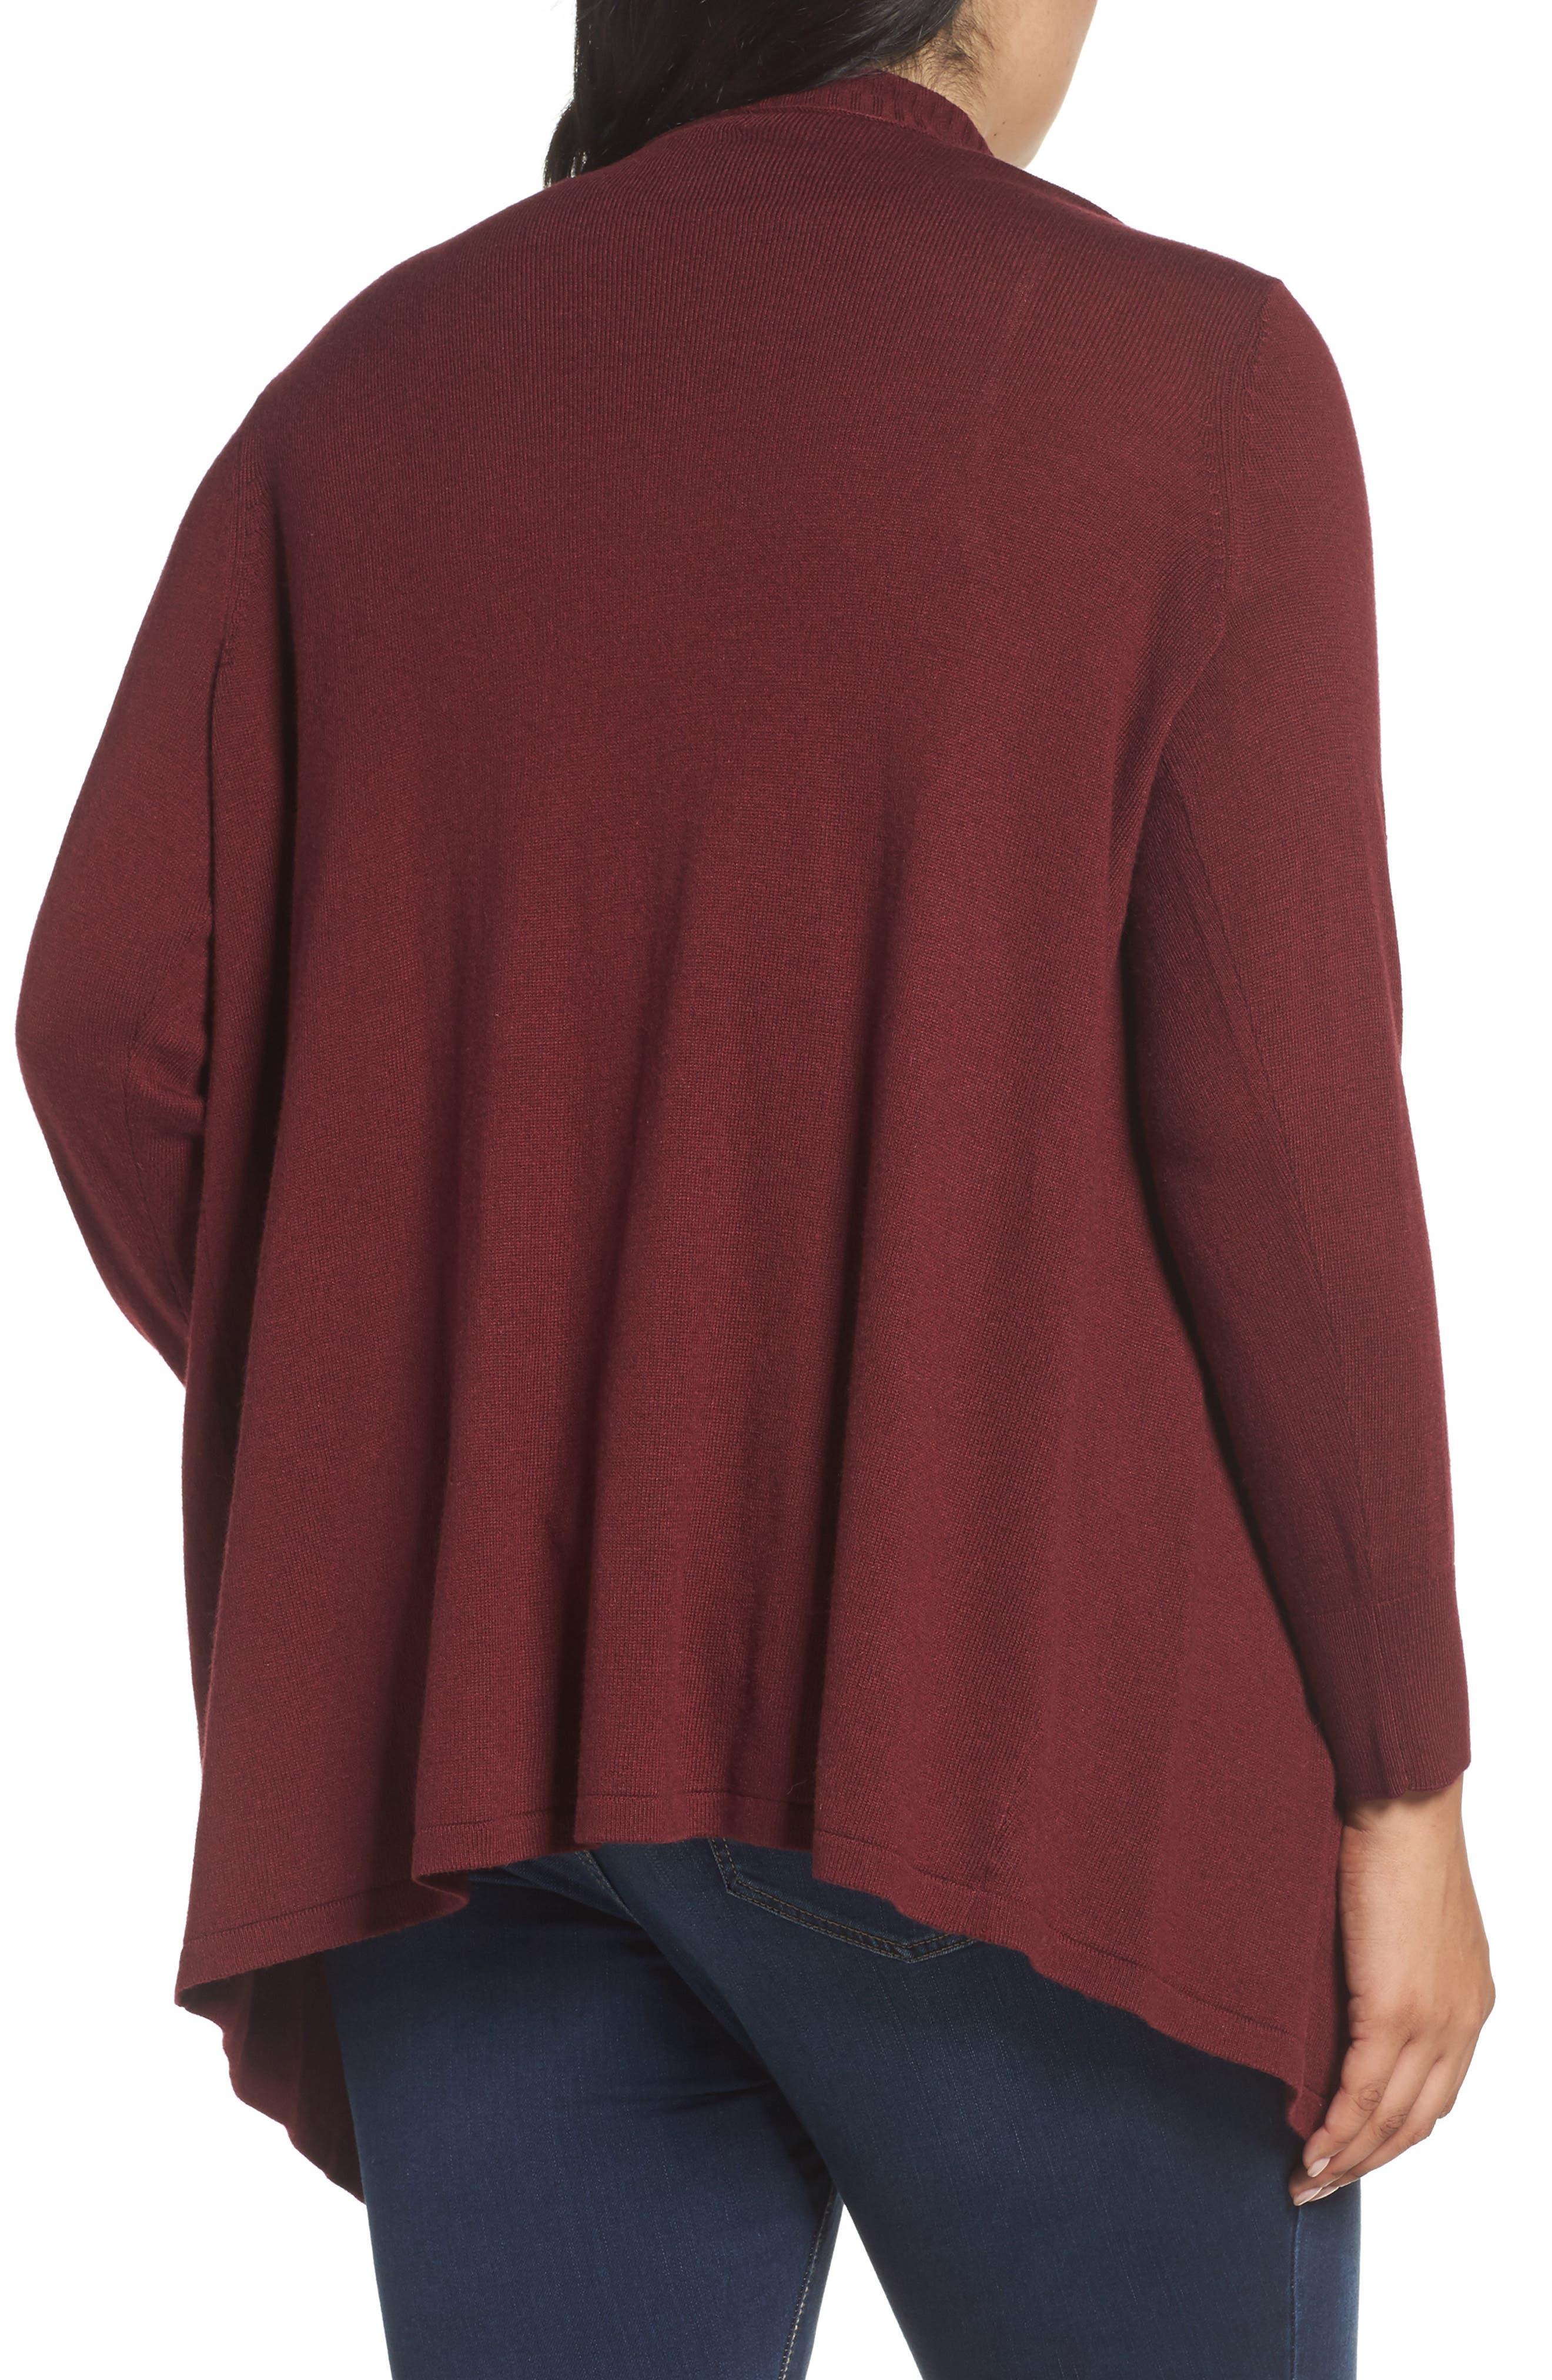 Cascade Open Front Cardigan,                             Alternate thumbnail 2, color,                             Red Tannin